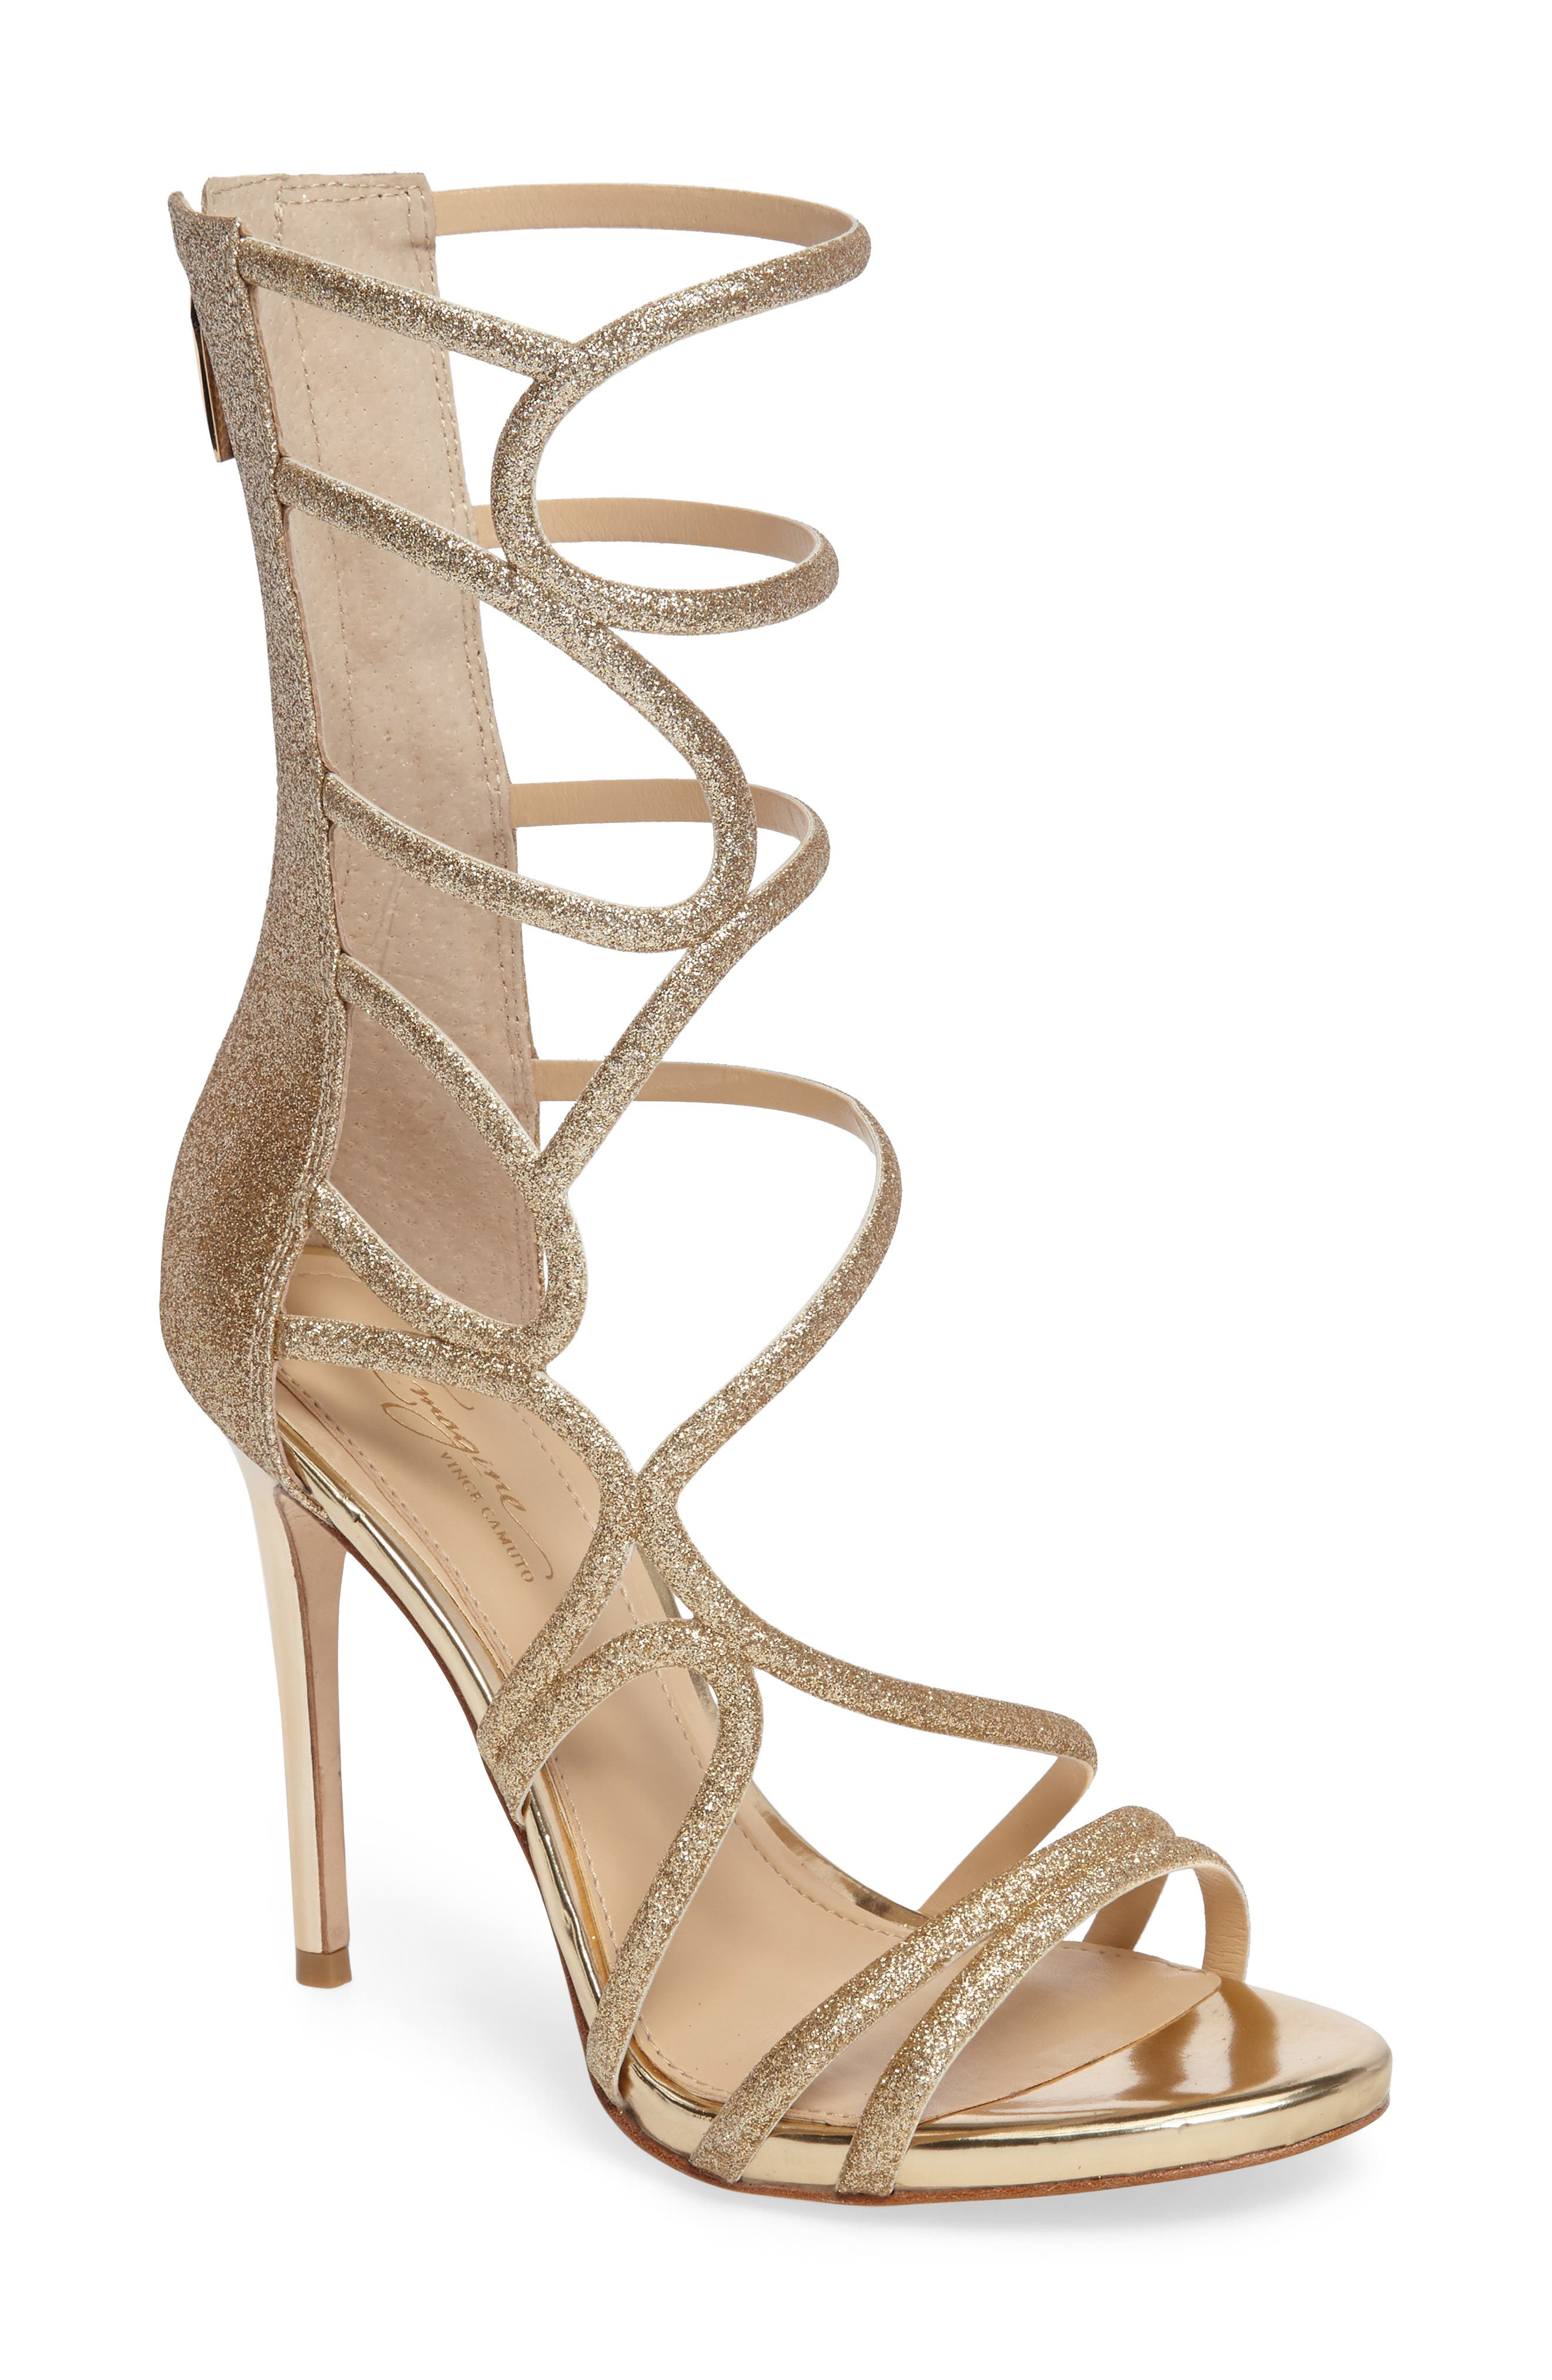 Alternate Image 1 Selected - Imagine Vince Camuto Daisi Sandal (Women)